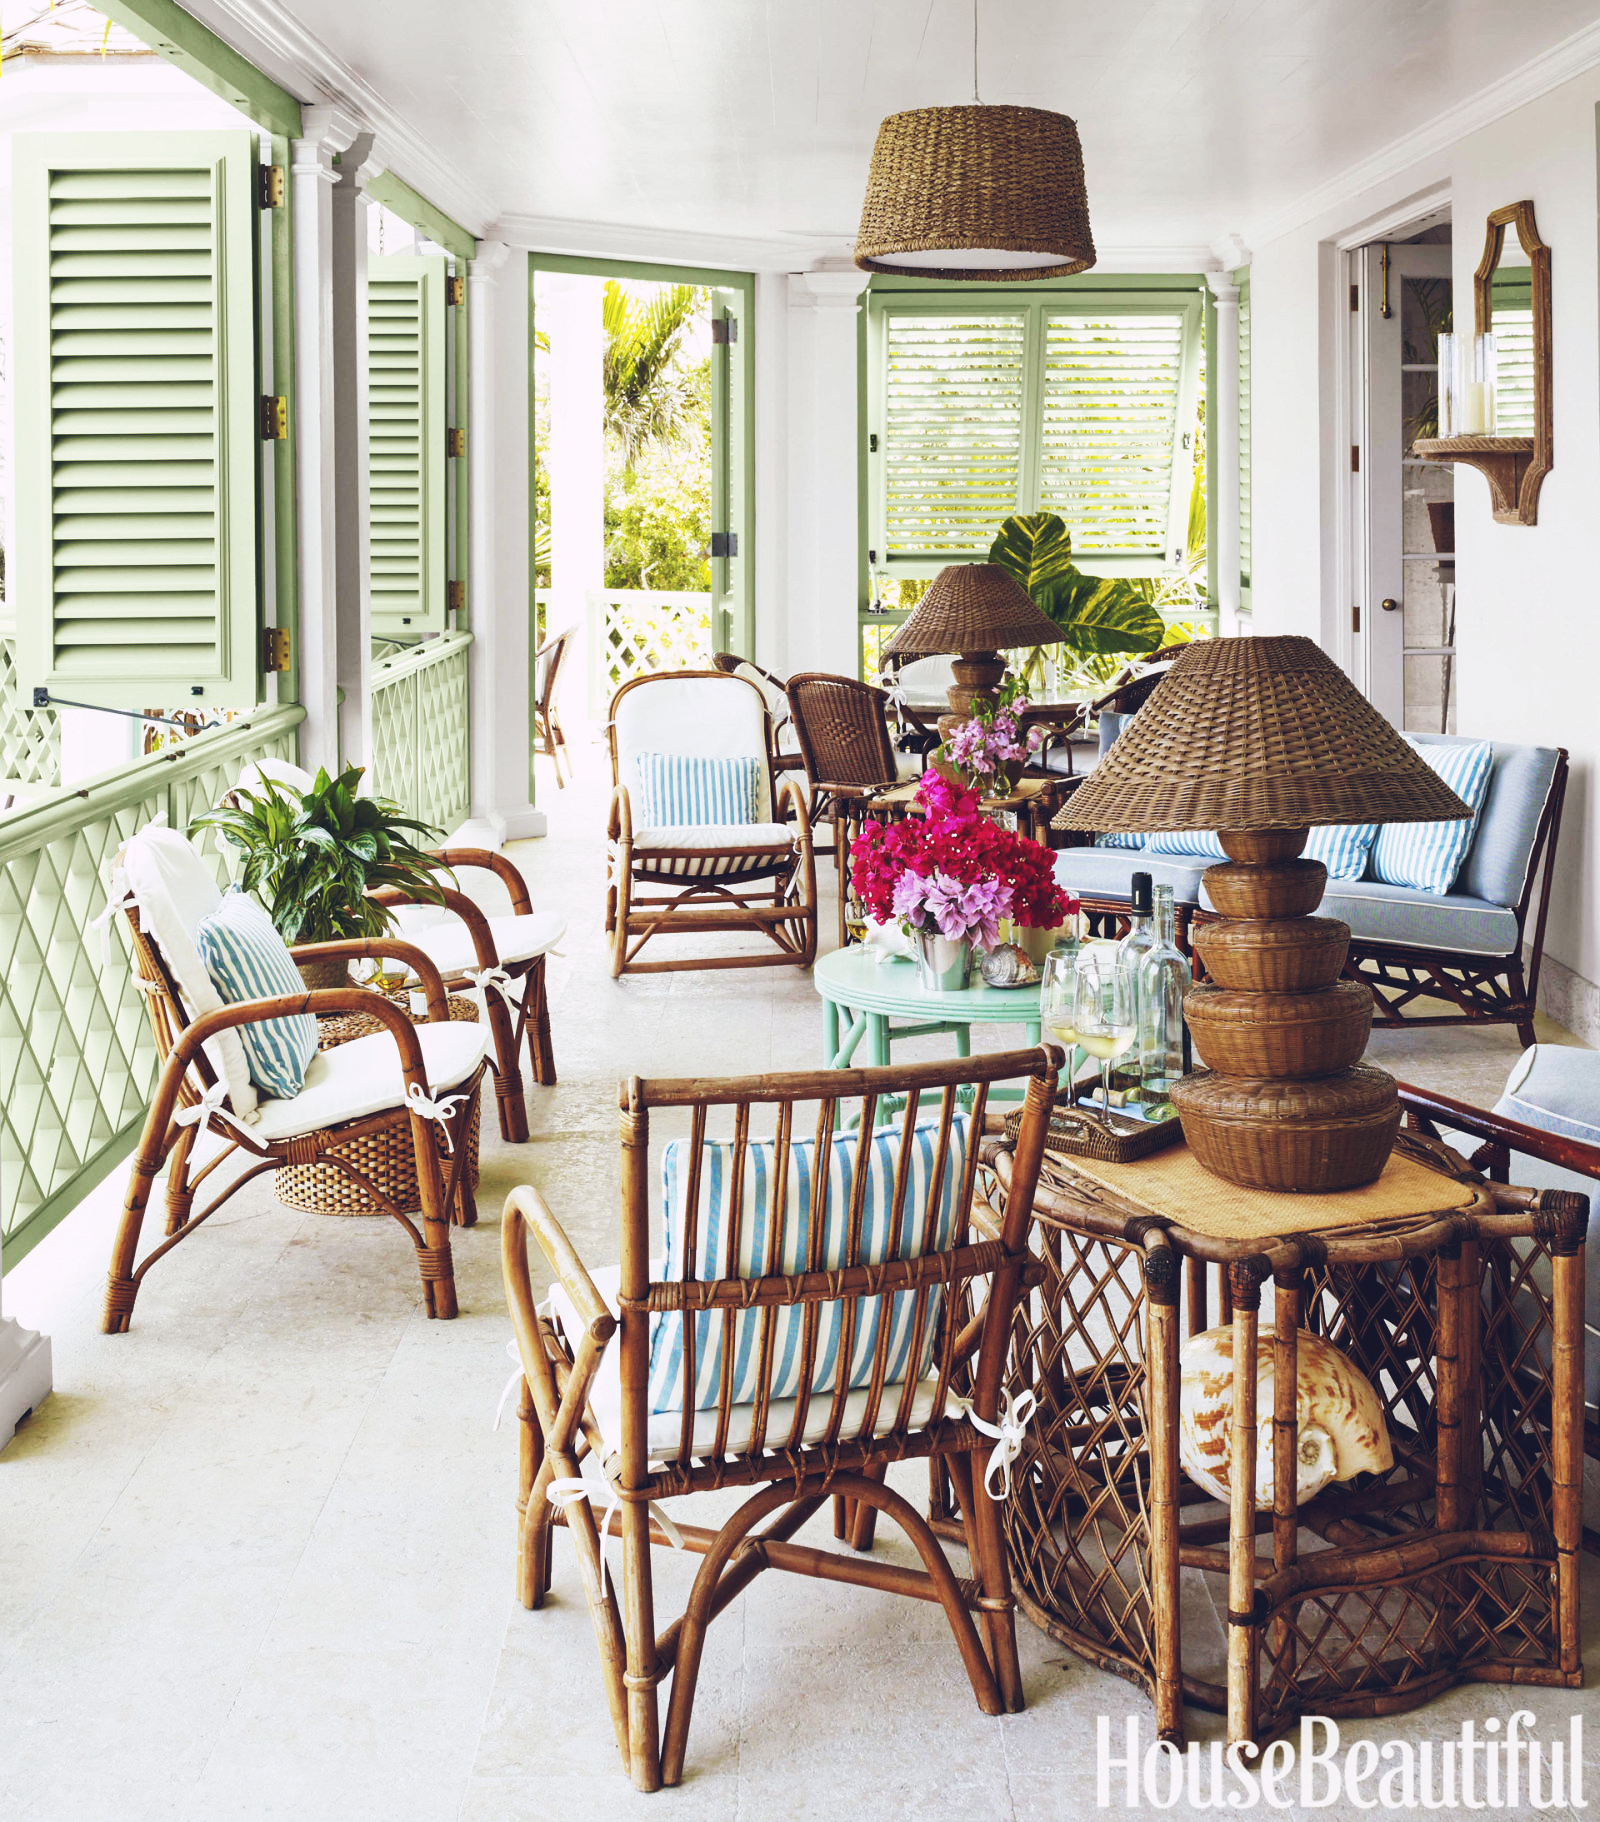 get the look with these  rattan armchairs !